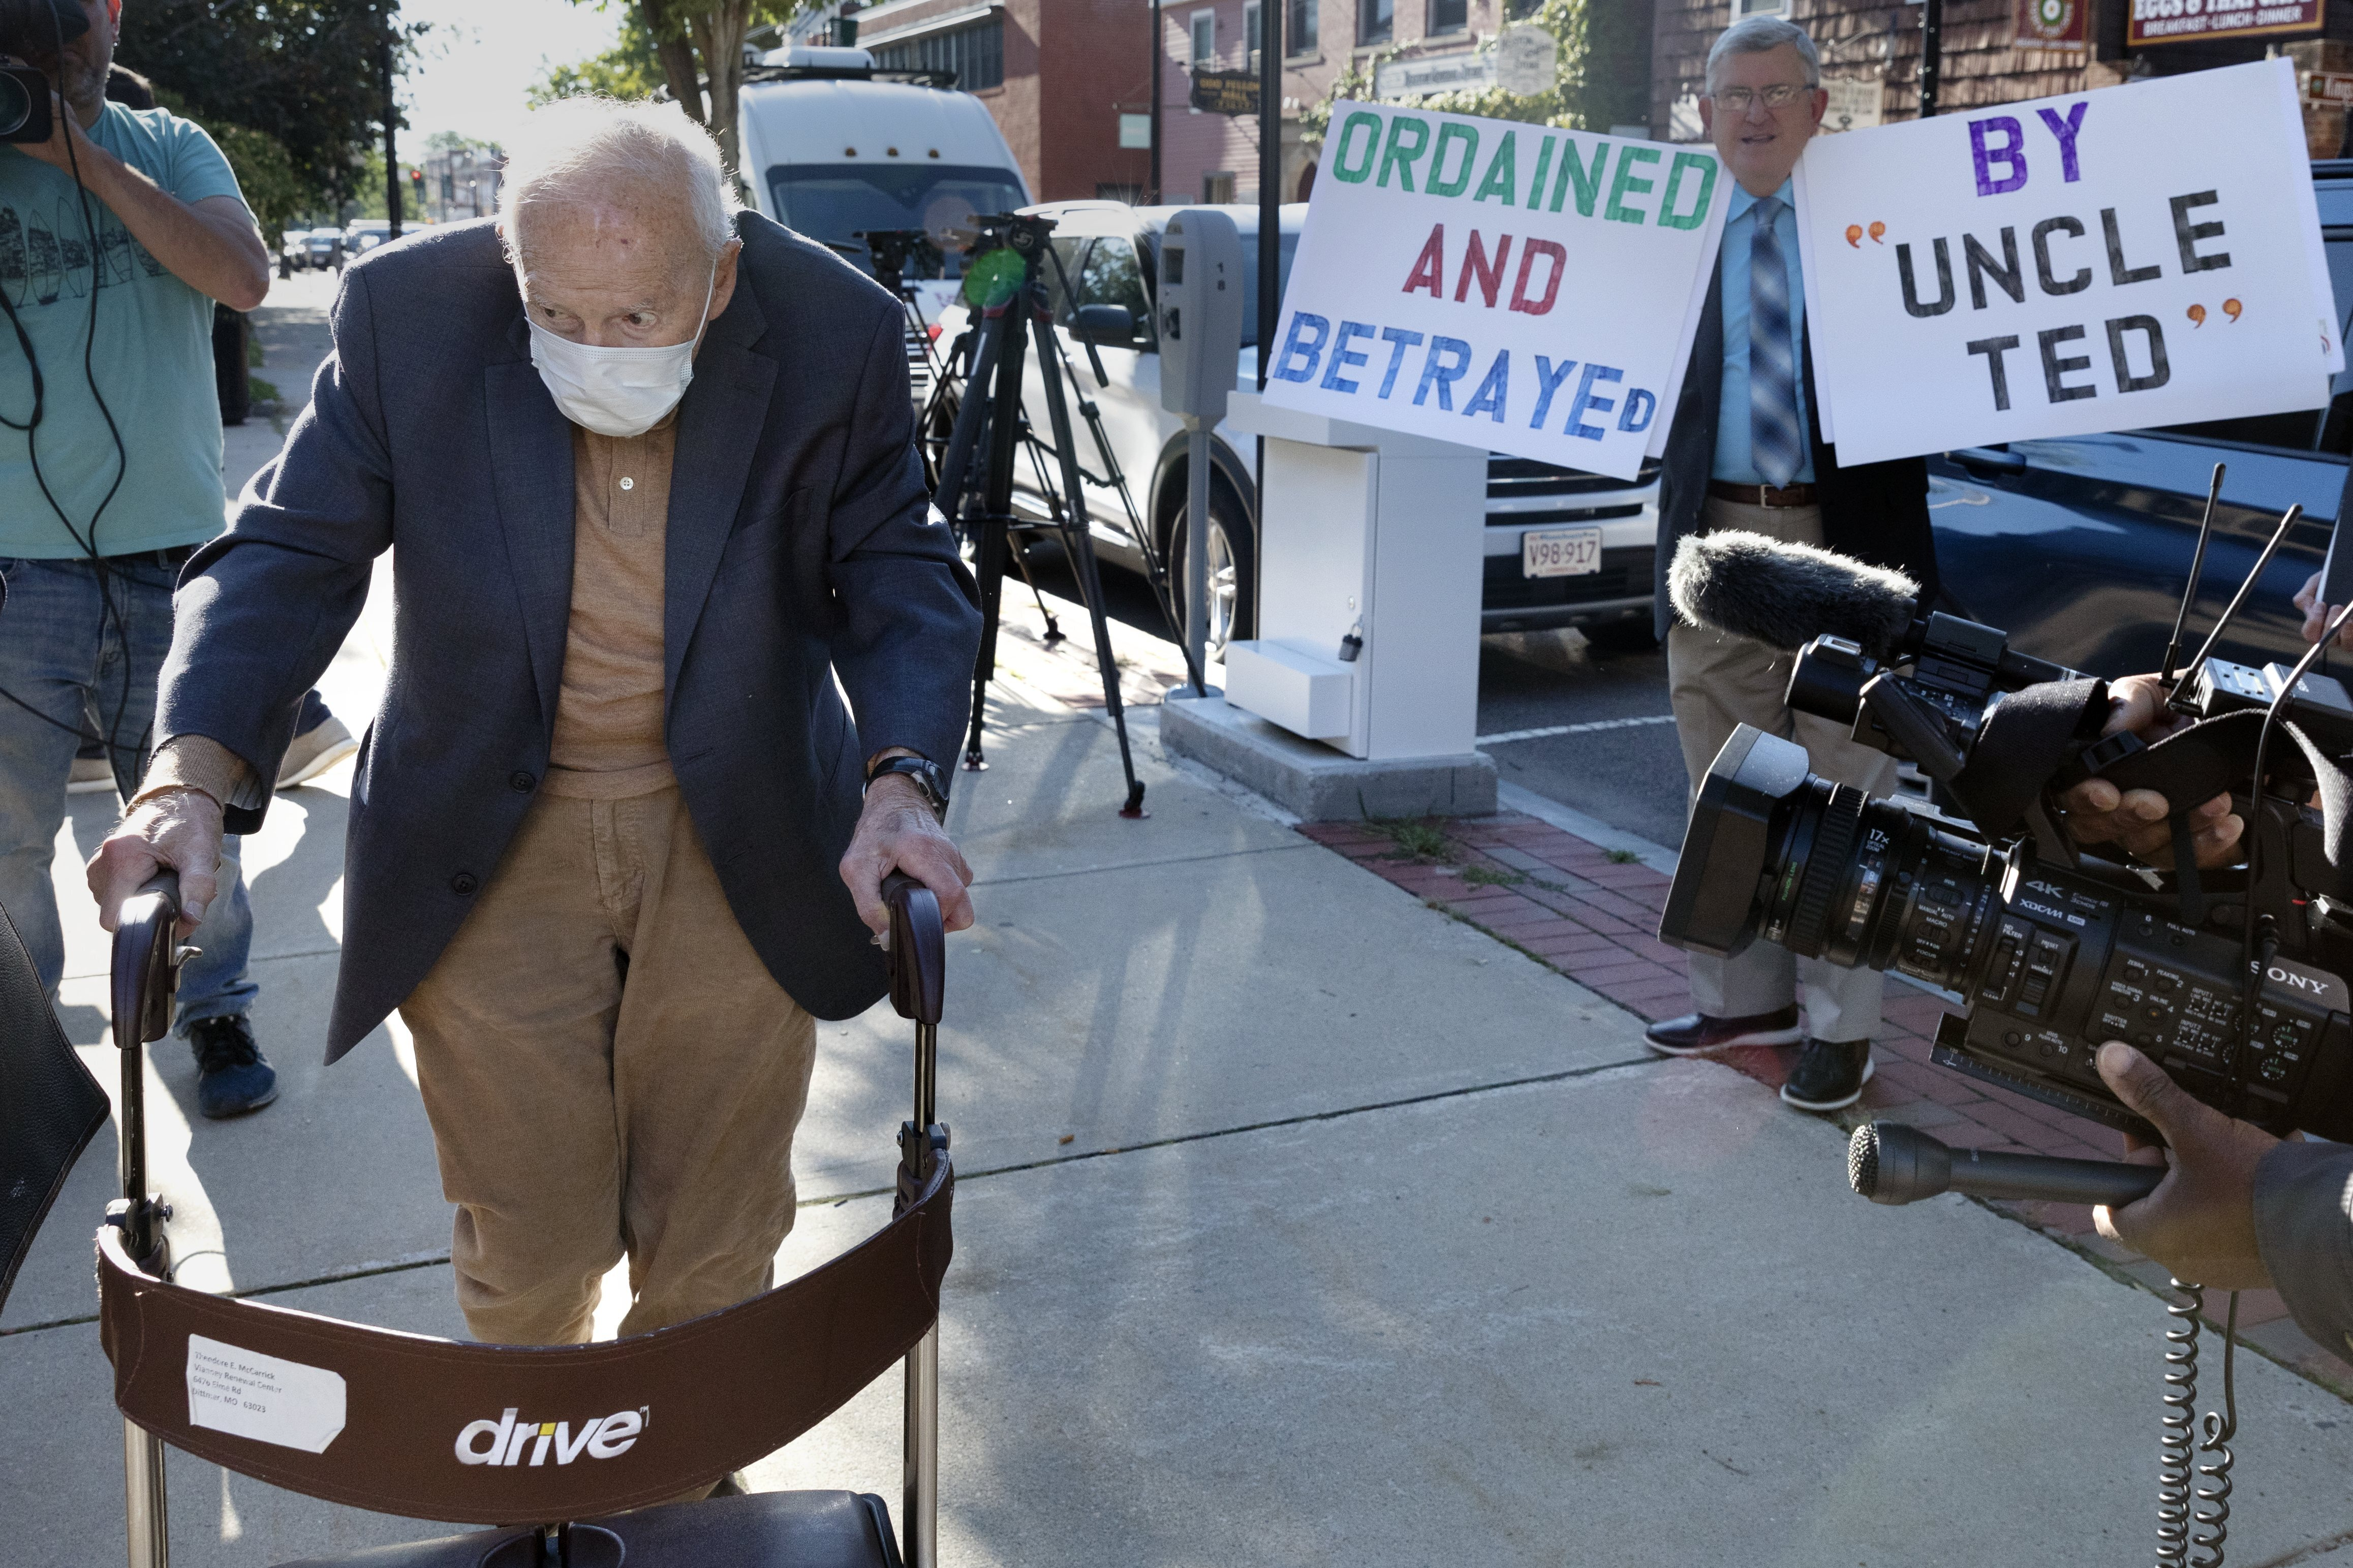 Defrocked Catholic Prelate Theodore McCarrick Arraigned for Child Sex Abuse Charges